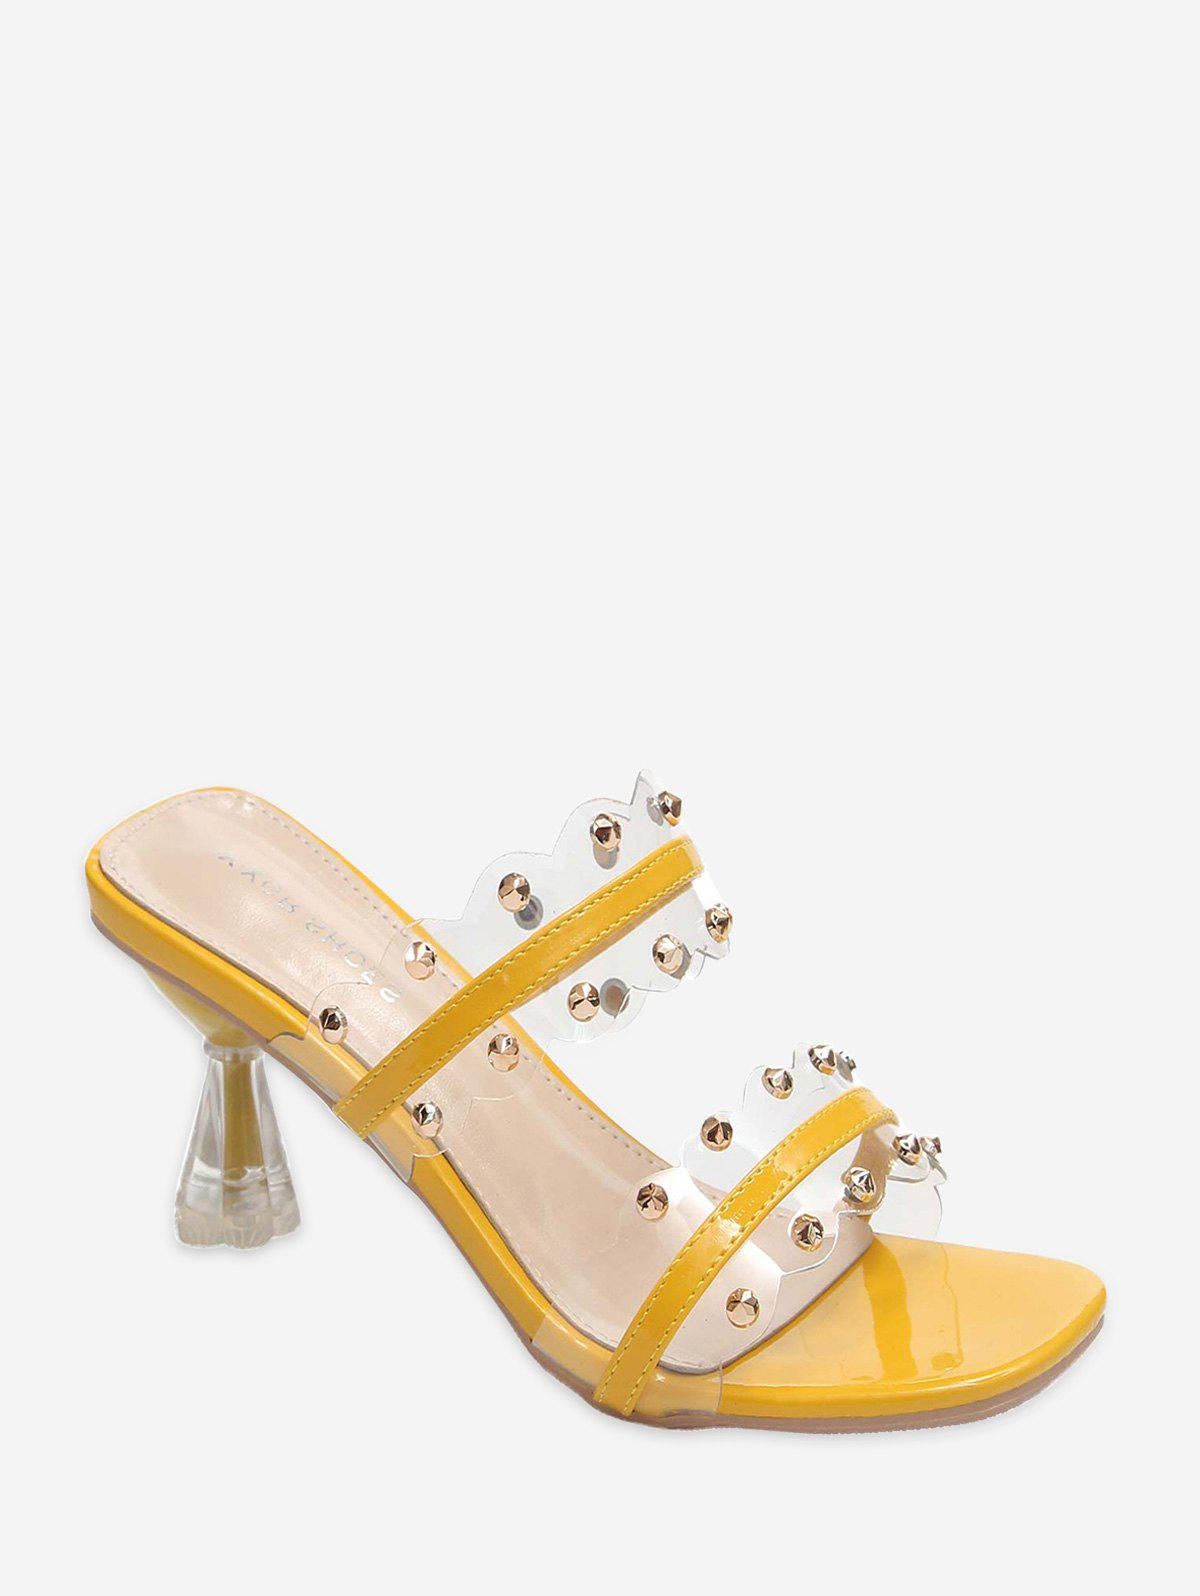 Clear Dual Strap Mid Heel Slides With Studs - YELLOW EU 38